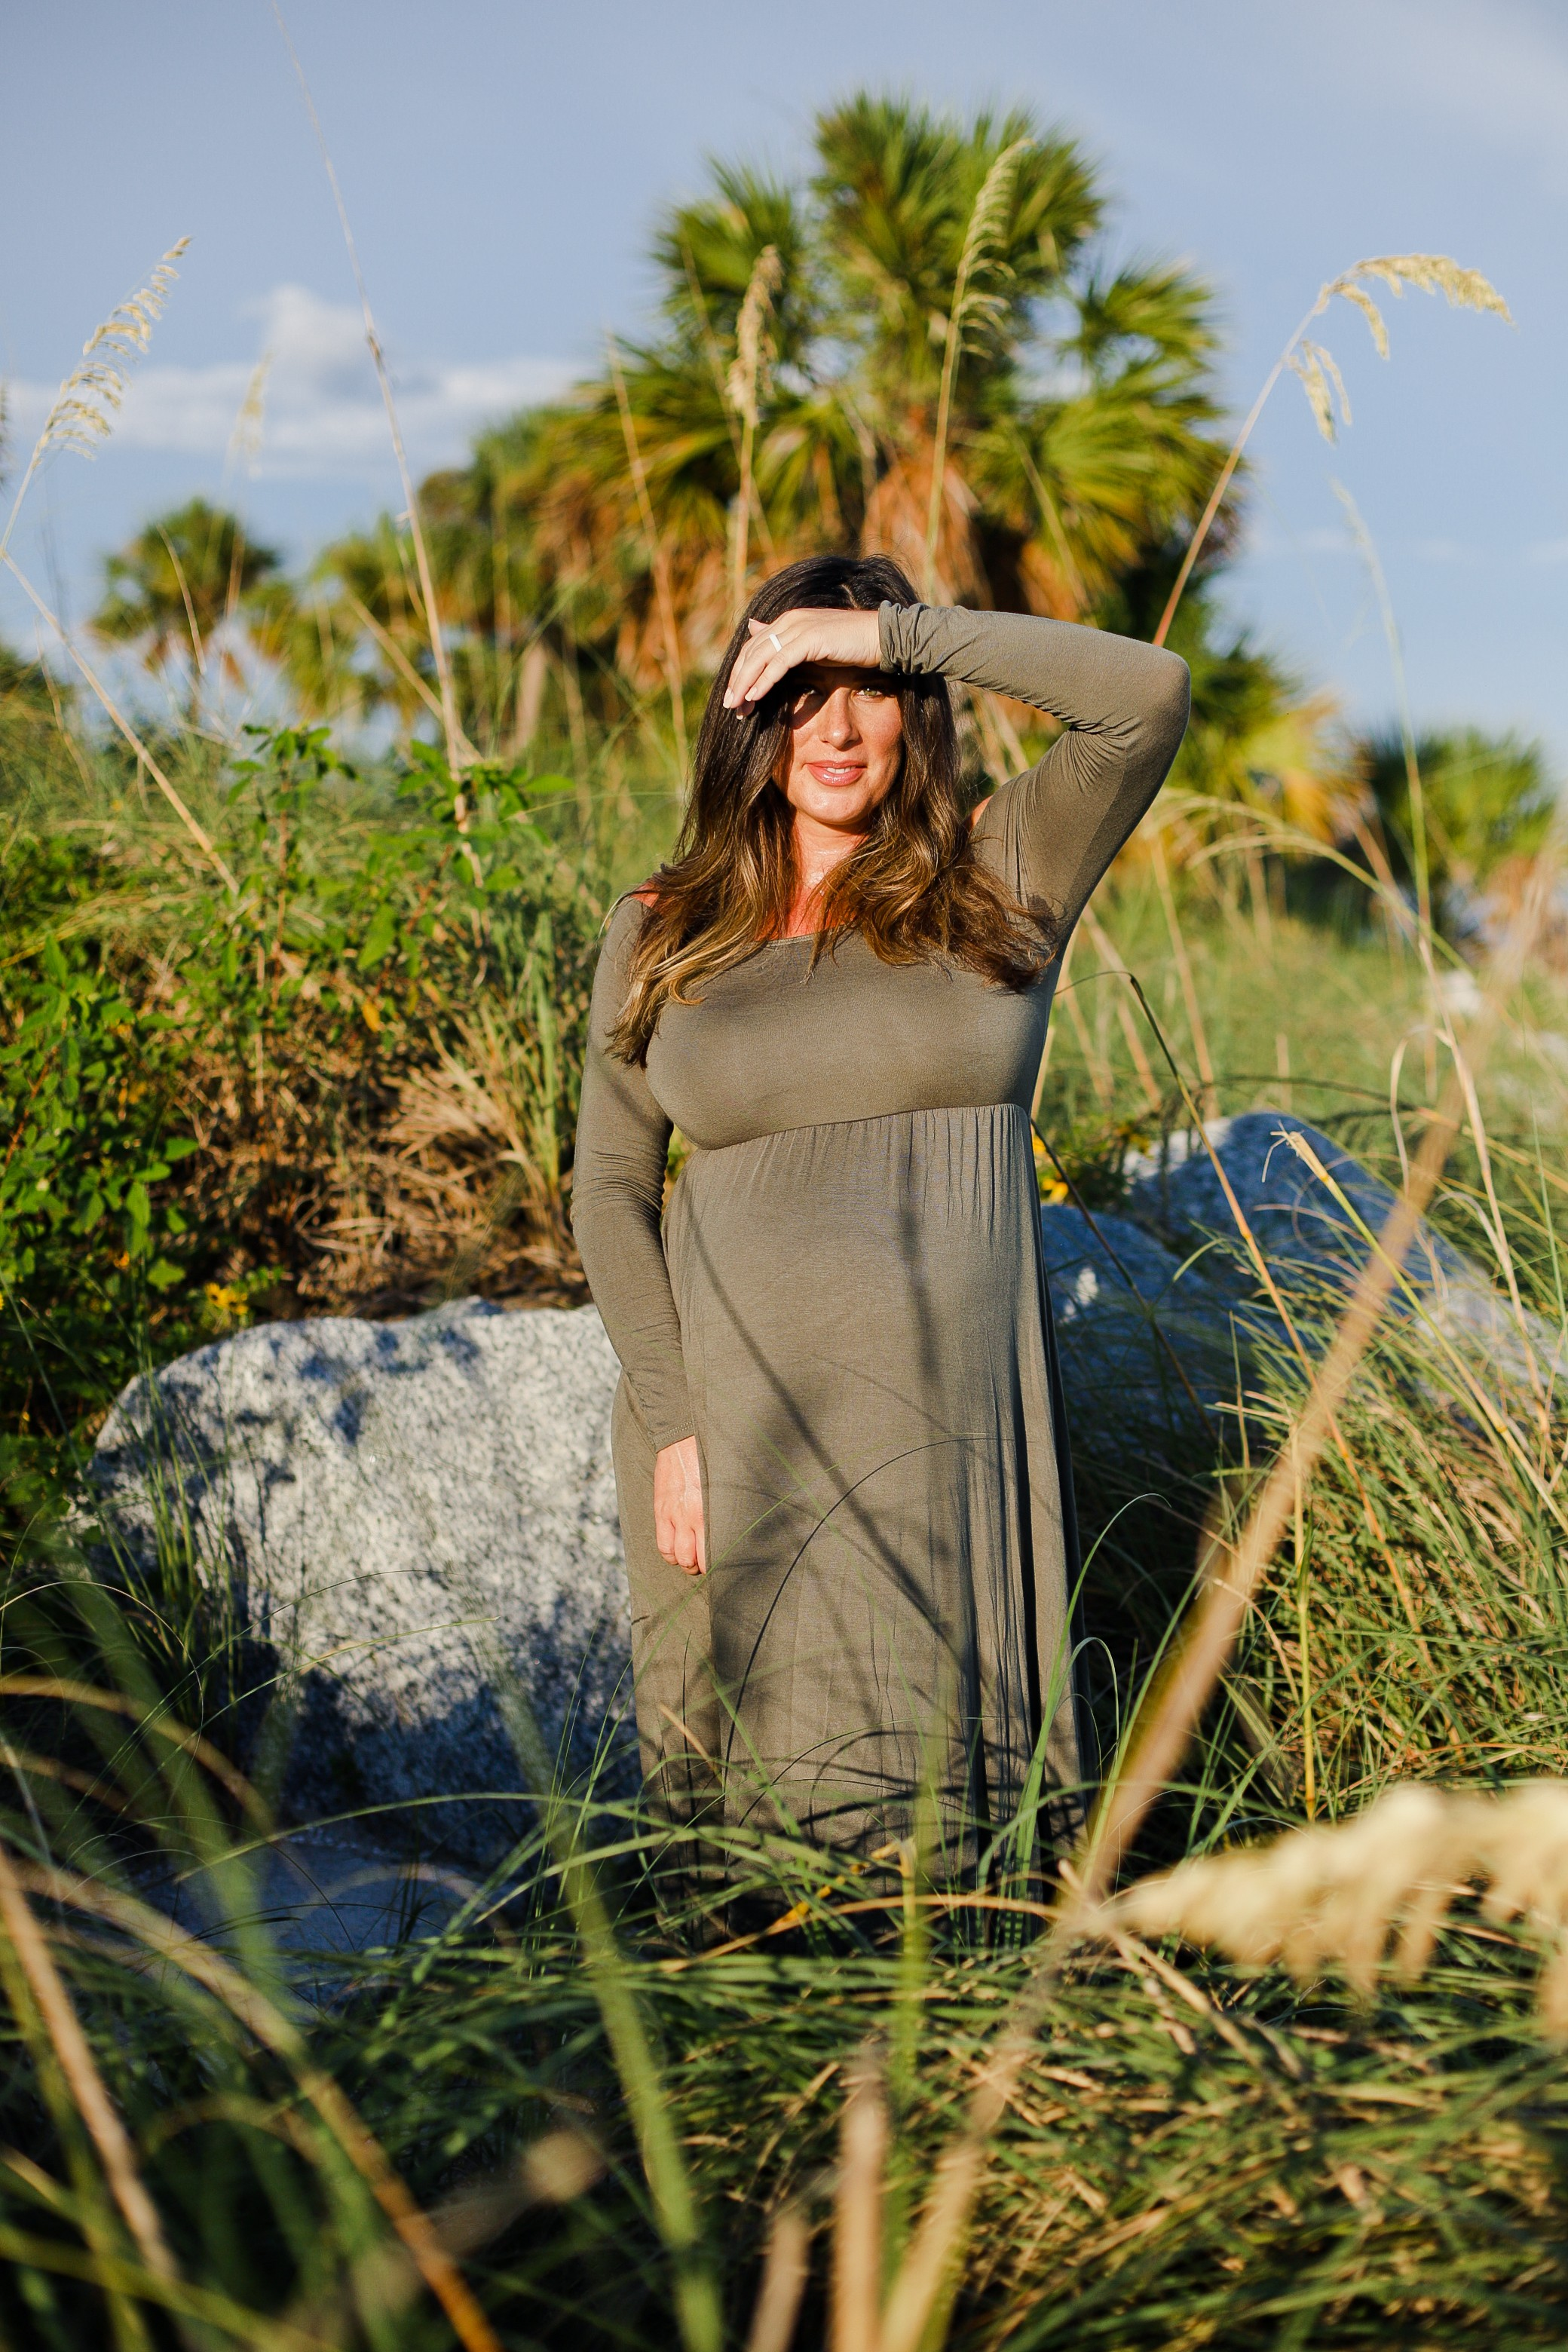 Twin Maternity Photos at the Beach | A Beach Maternity Photoshoot in Olive Green by popular Florida life and style blog, Fresh Mommy: image of a woman standing outside at the beach and wearing a Pink Blush Olive Solid Off Shoulder Maternity Maxi Dress.